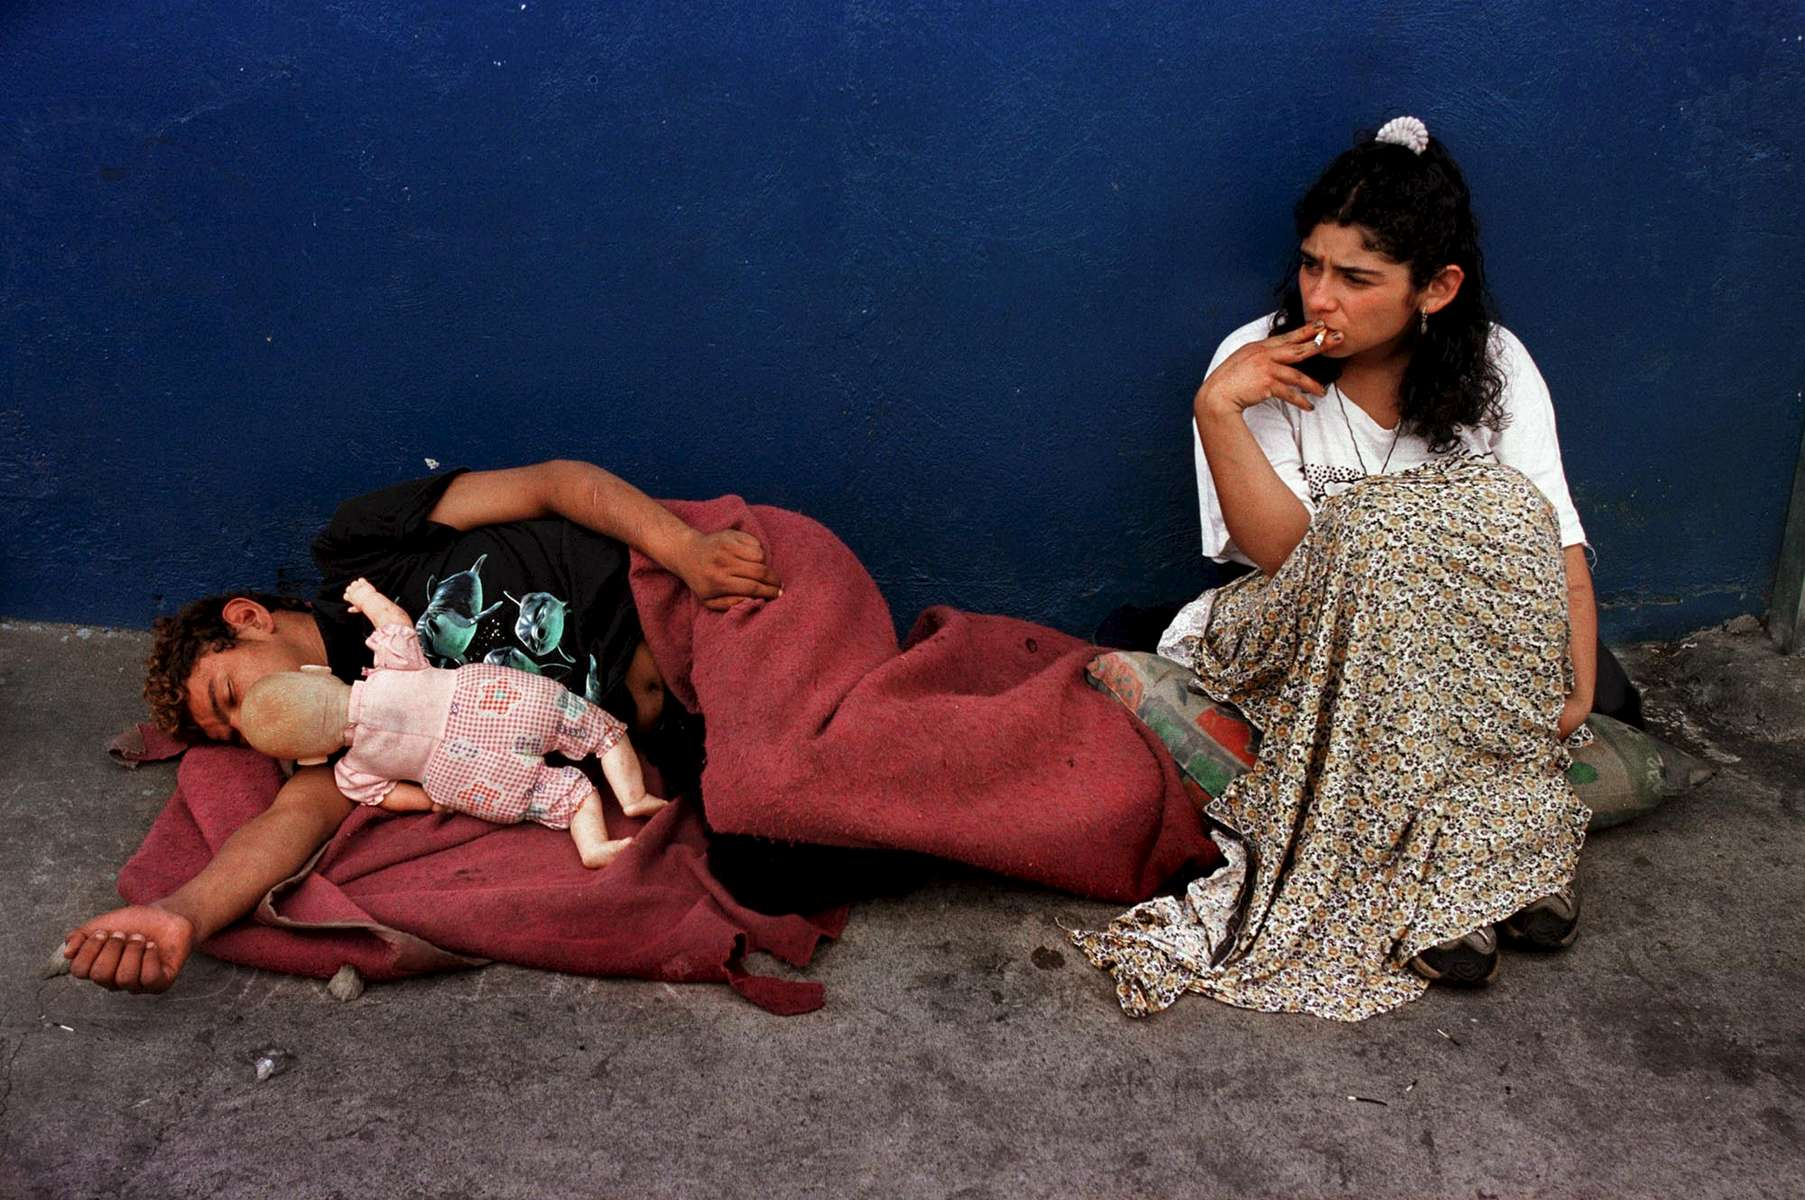 A young man strung out on drugs is passed out while holding a baby doll on the streets of San Jose. At right is his girlfriend. Teenage drug use is rampant by those living on the streets of the capital city.